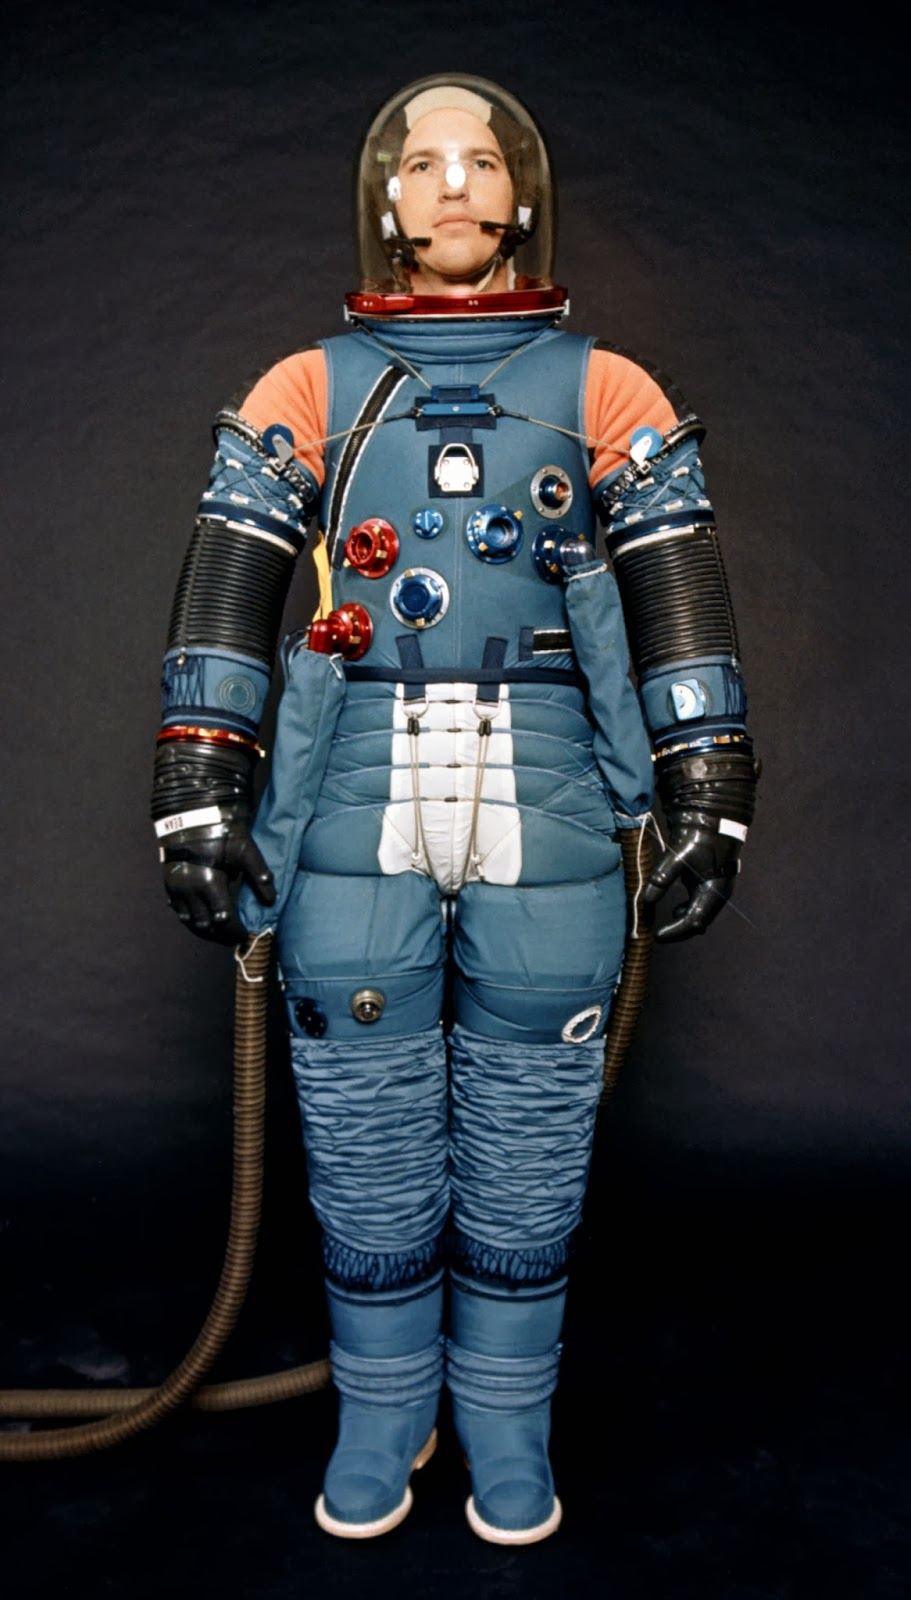 weight of apollo space suit - photo #3